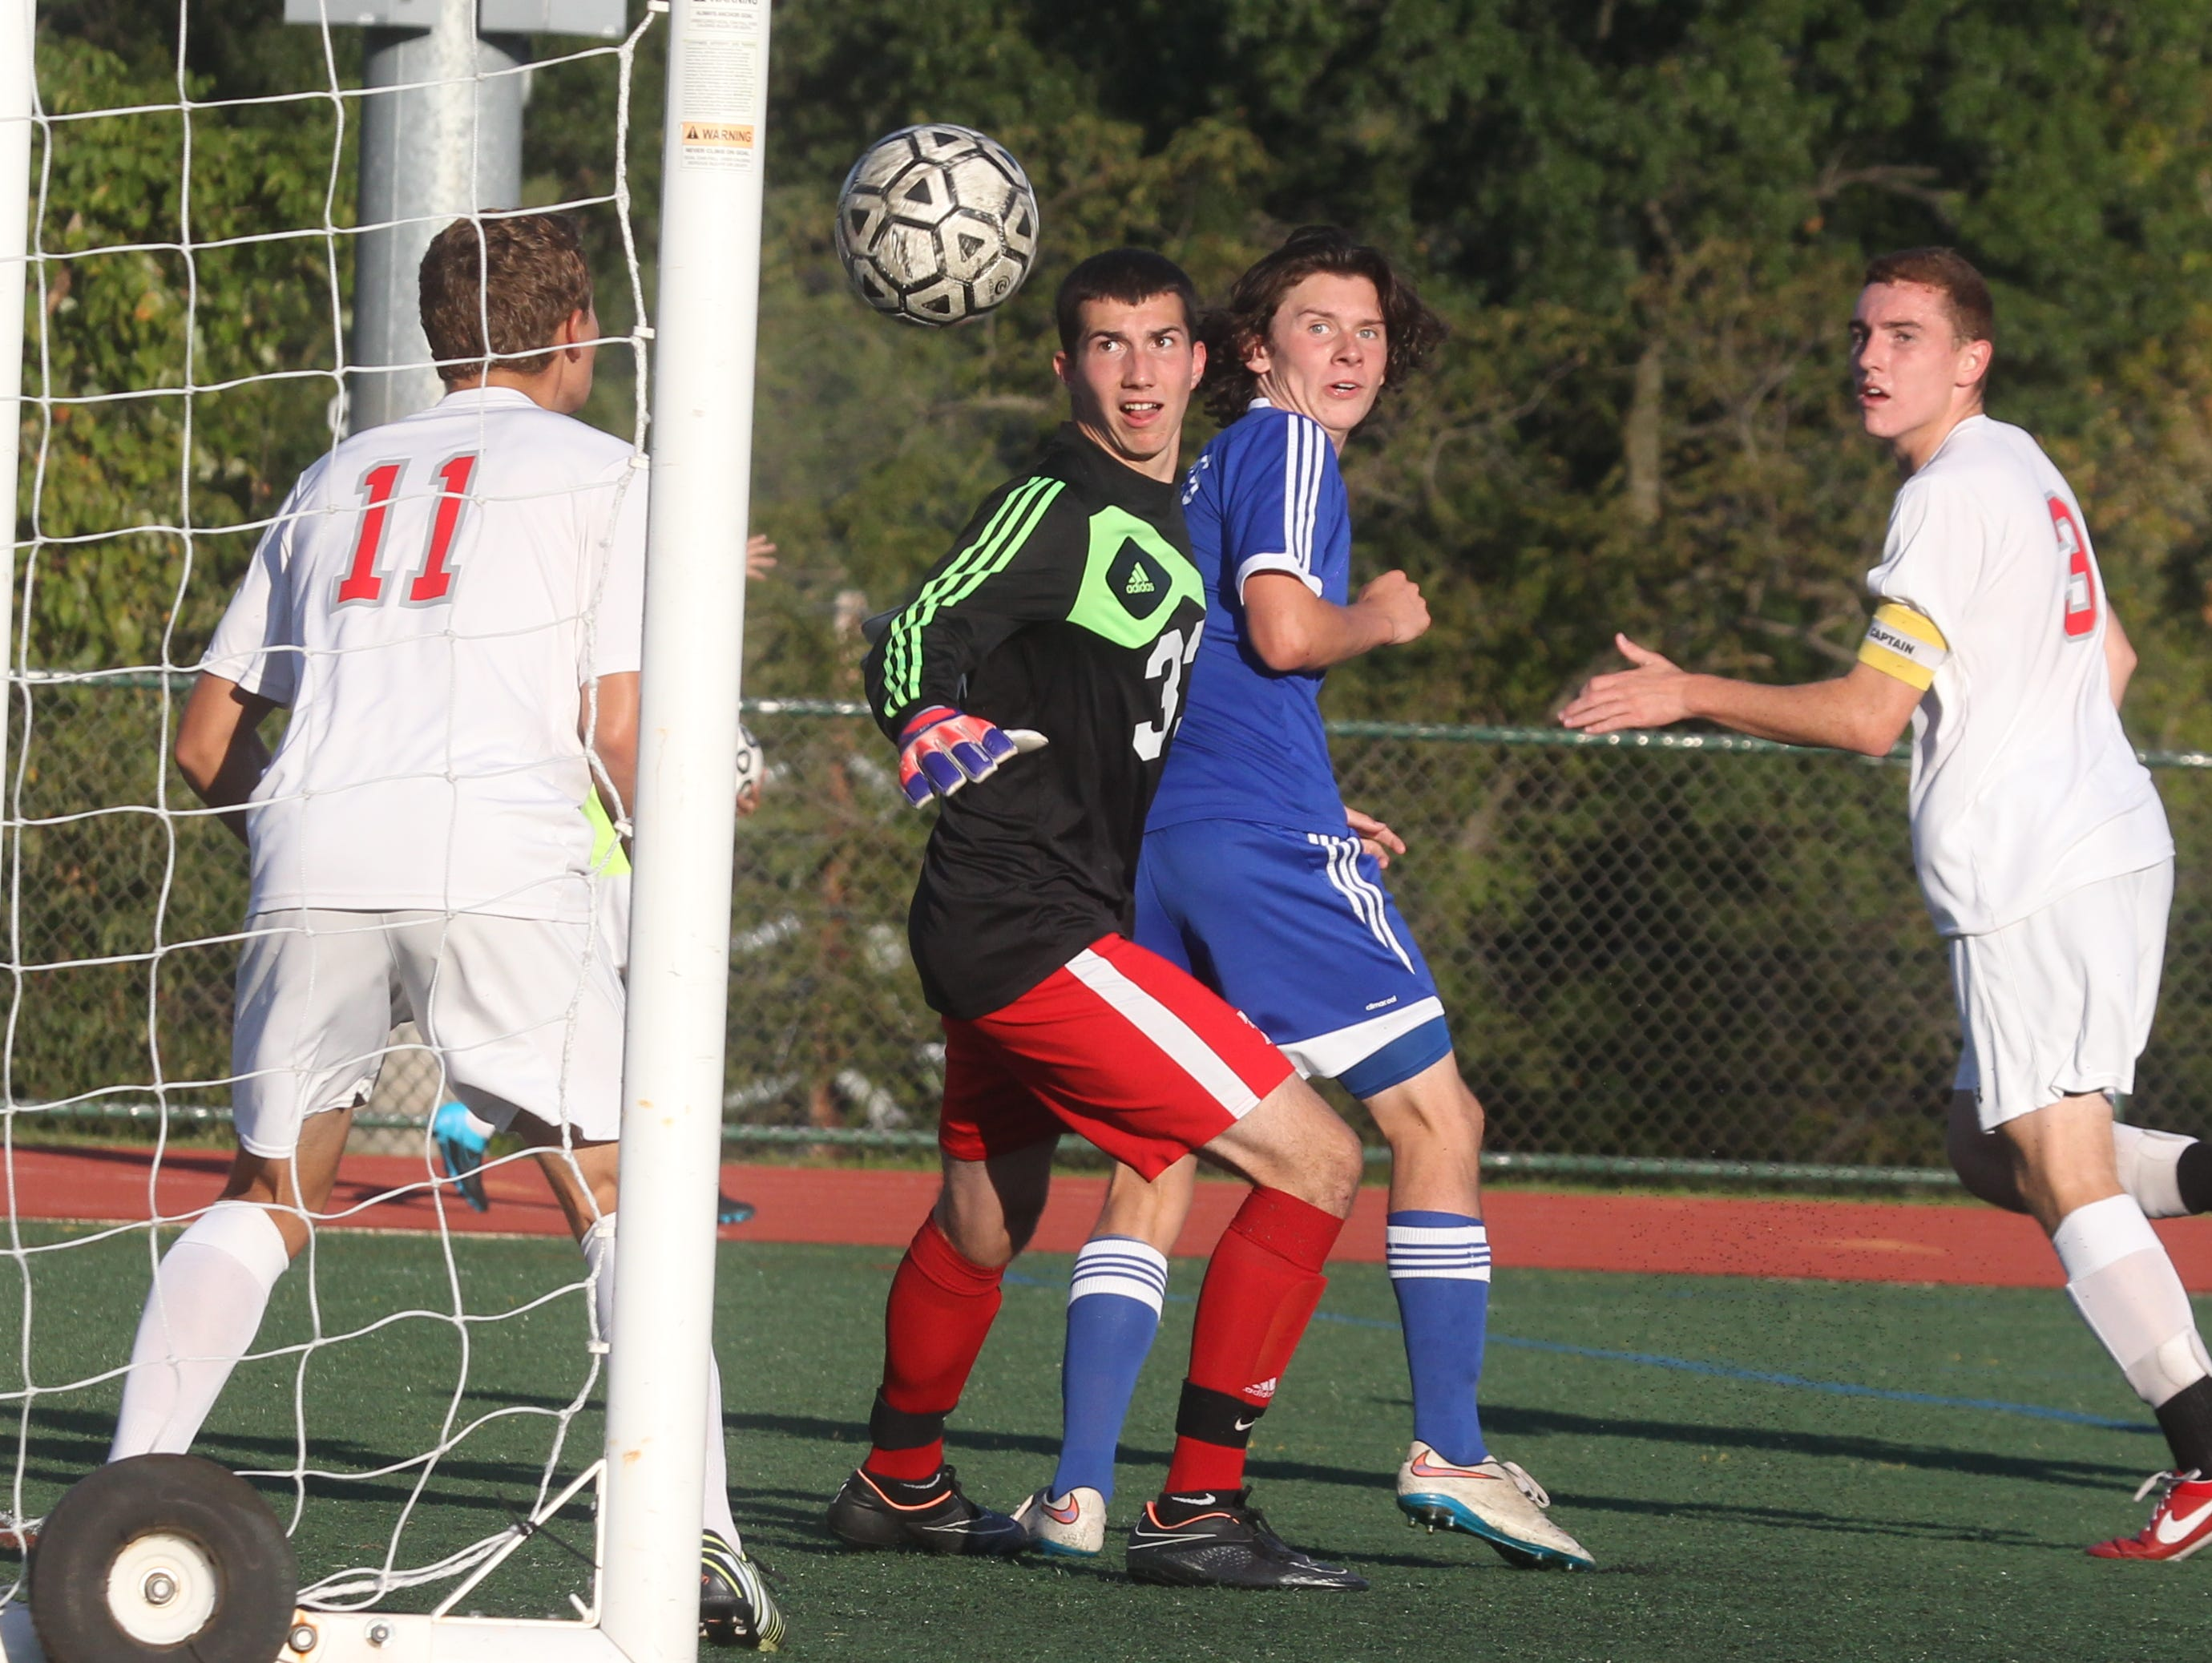 Tappan Zee goalie John Connor watches the ball go into the net, but it didn't count since it went in directly from a throw-in Sept. 24, 2015. Pearl River won1-0.